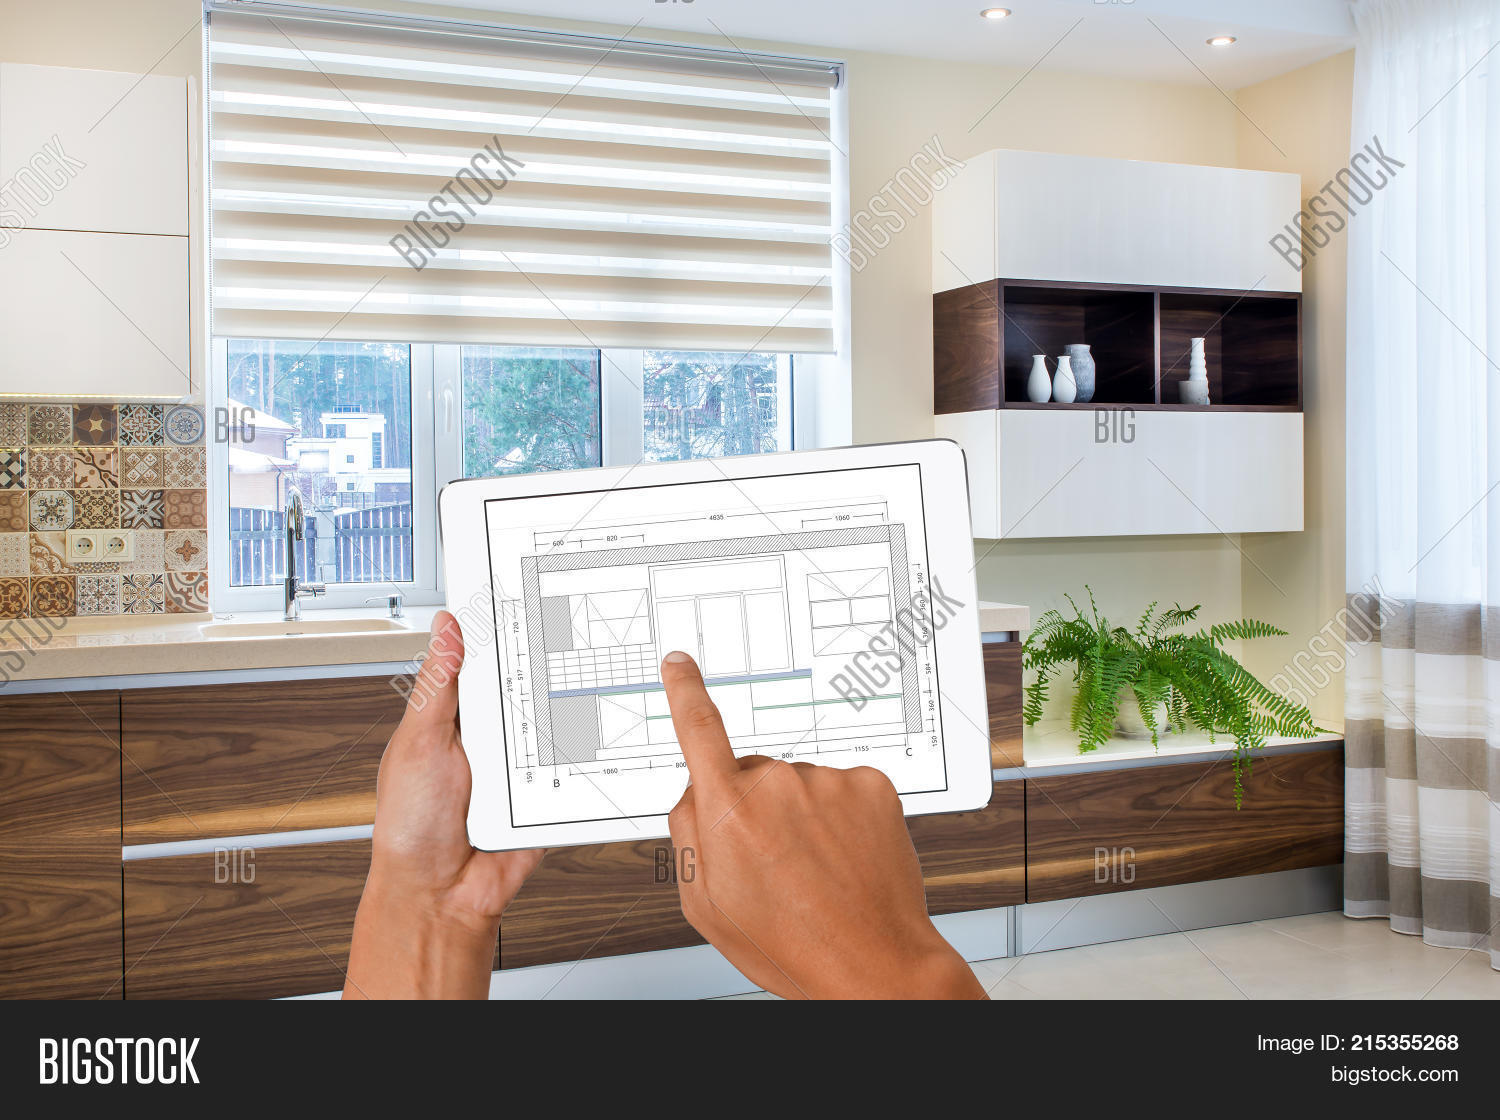 Hands Holding Tablet Image Photo Free Trial Bigstock